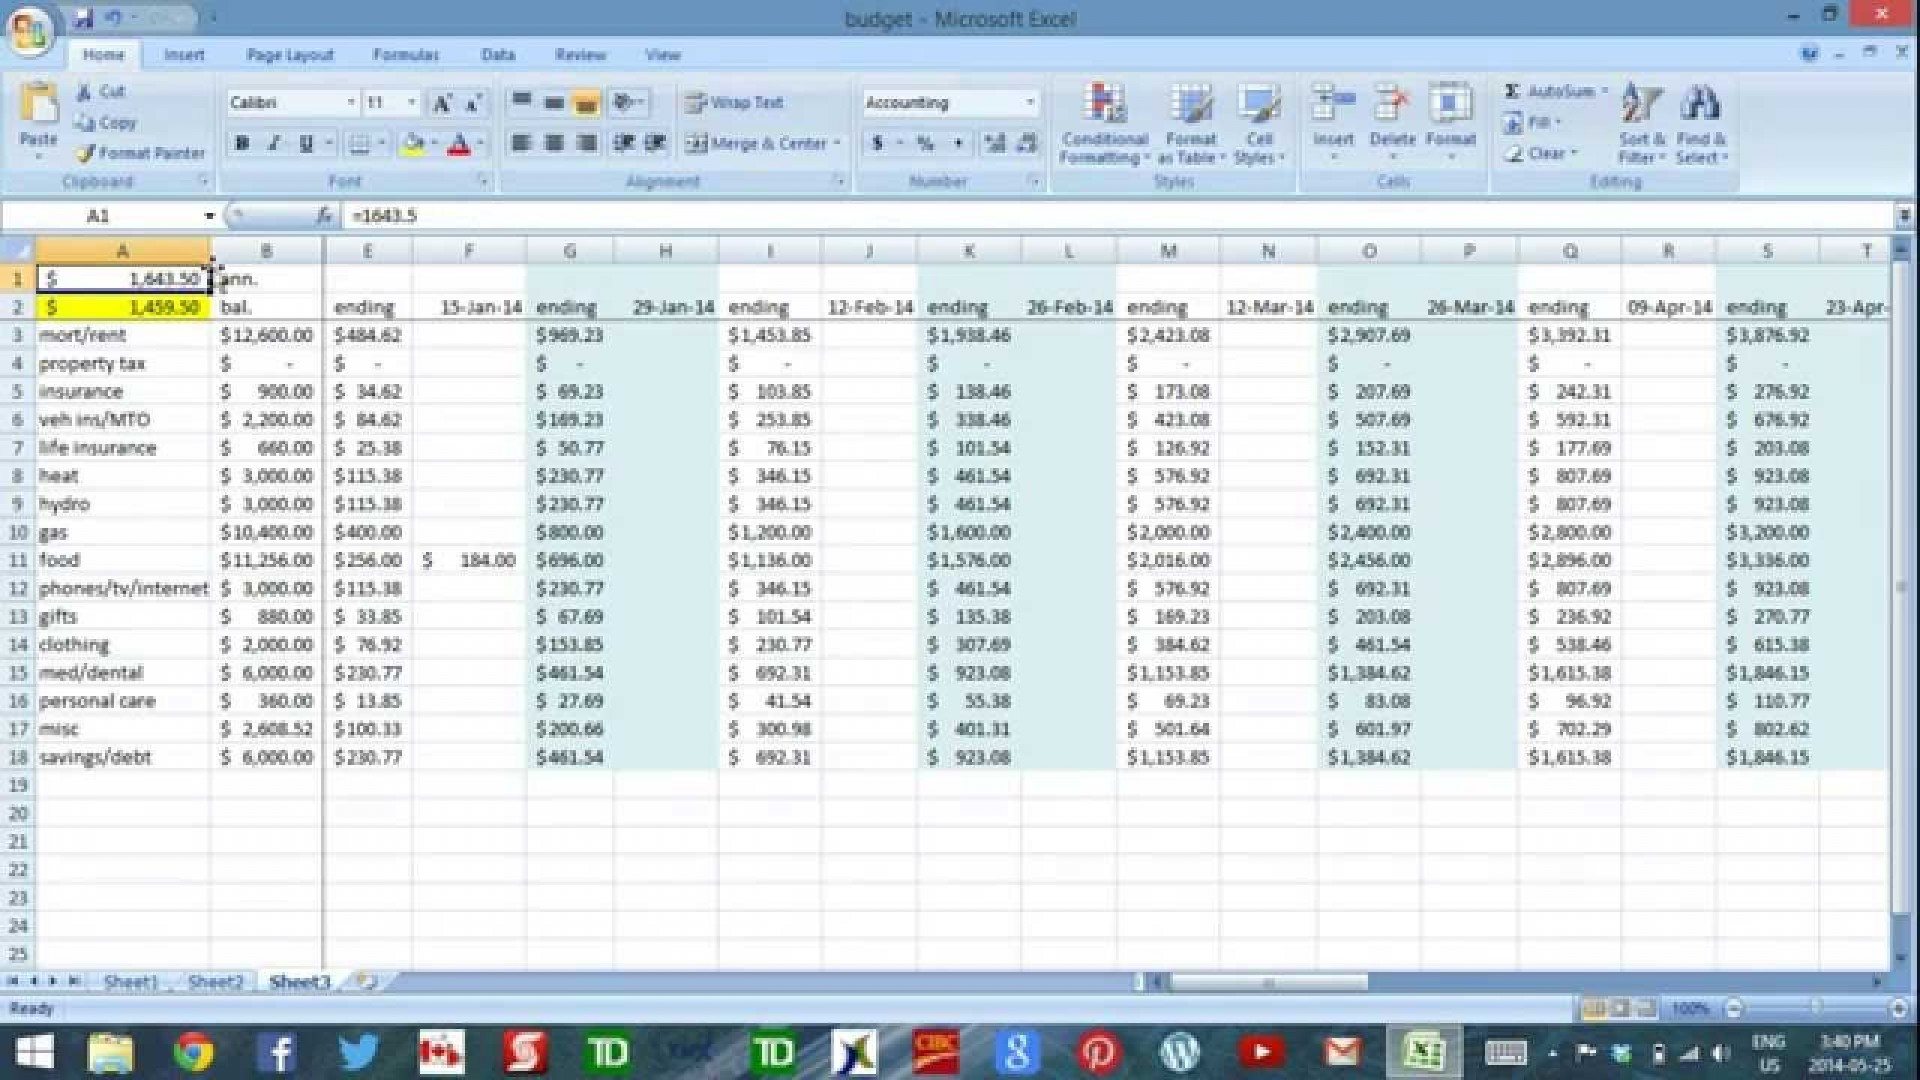 Daily Cash Flow Spreadsheet Template Intended For 027 Template Ideas Monthly Cash Flow Spreadsheet Of Infuse Operative